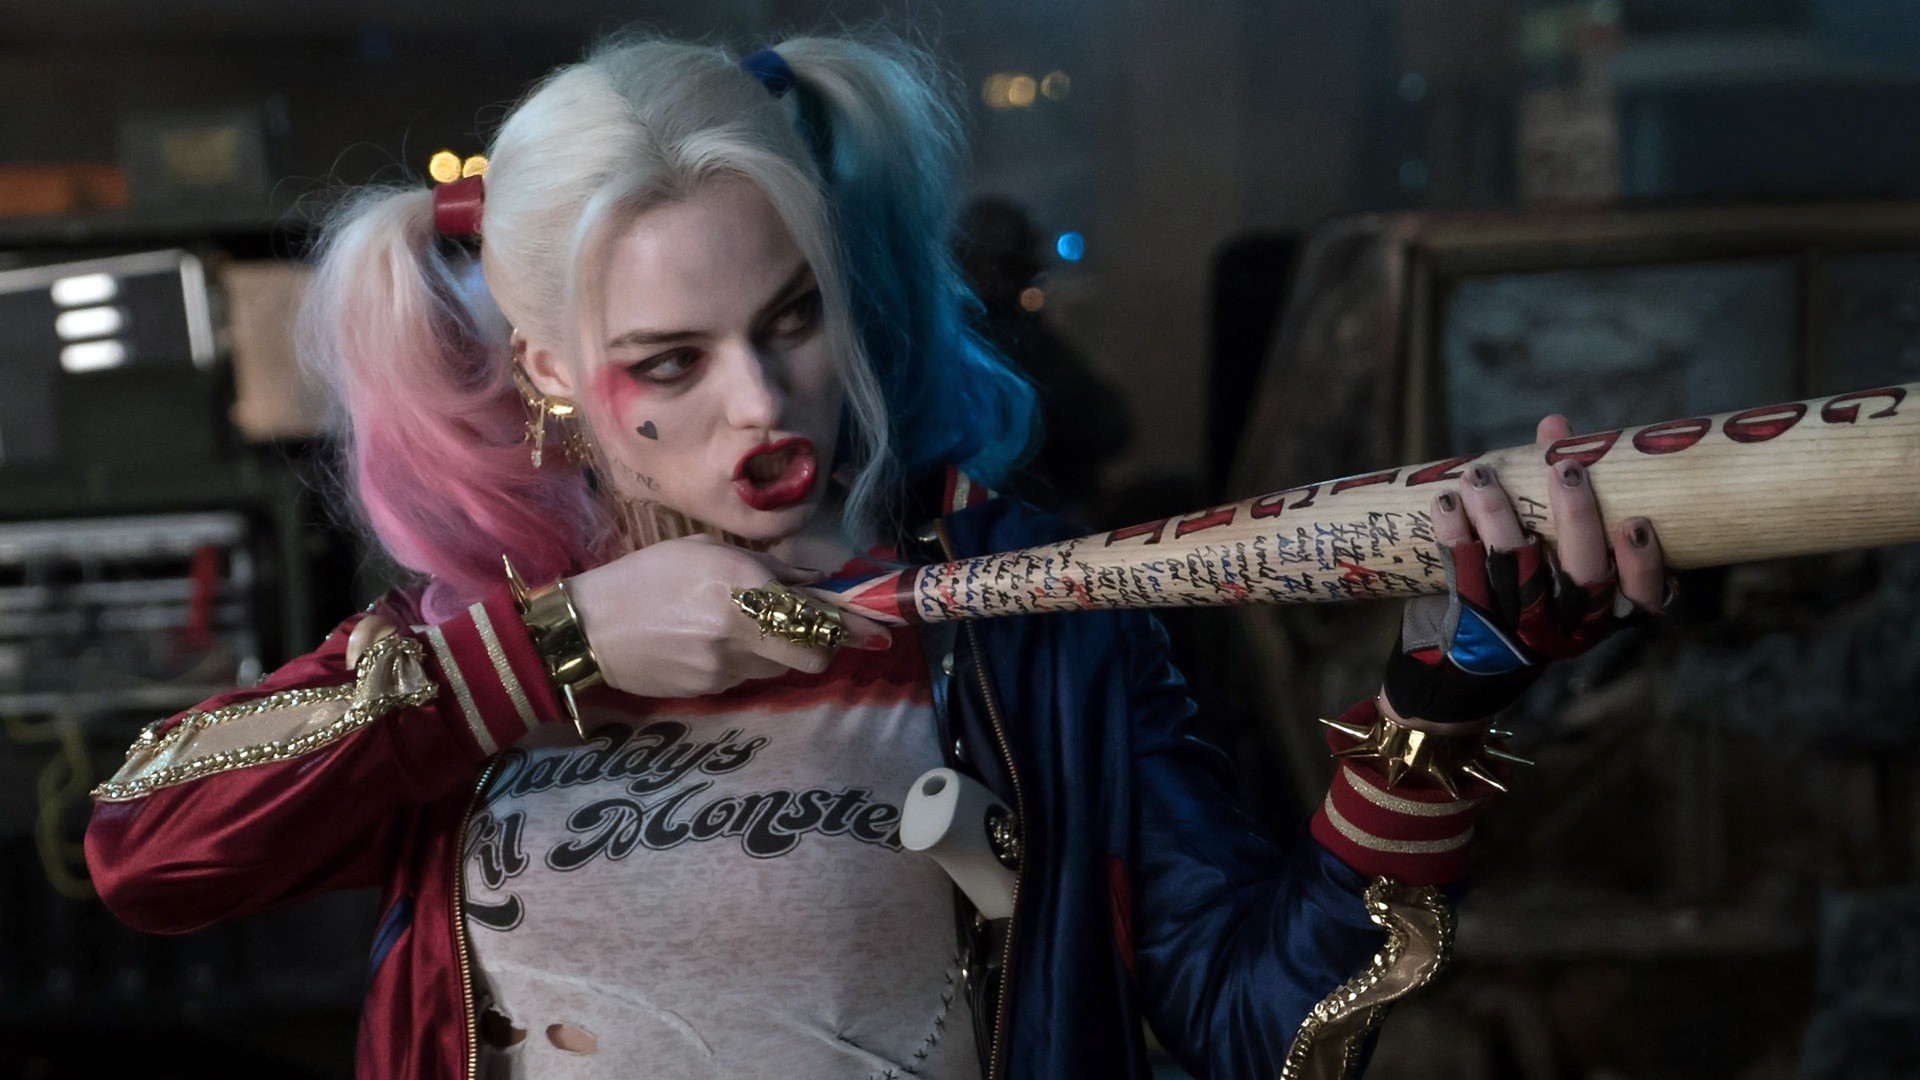 Margot Robbie nailed it as Harley Quinn and she's getting her own movie in the DCEU!